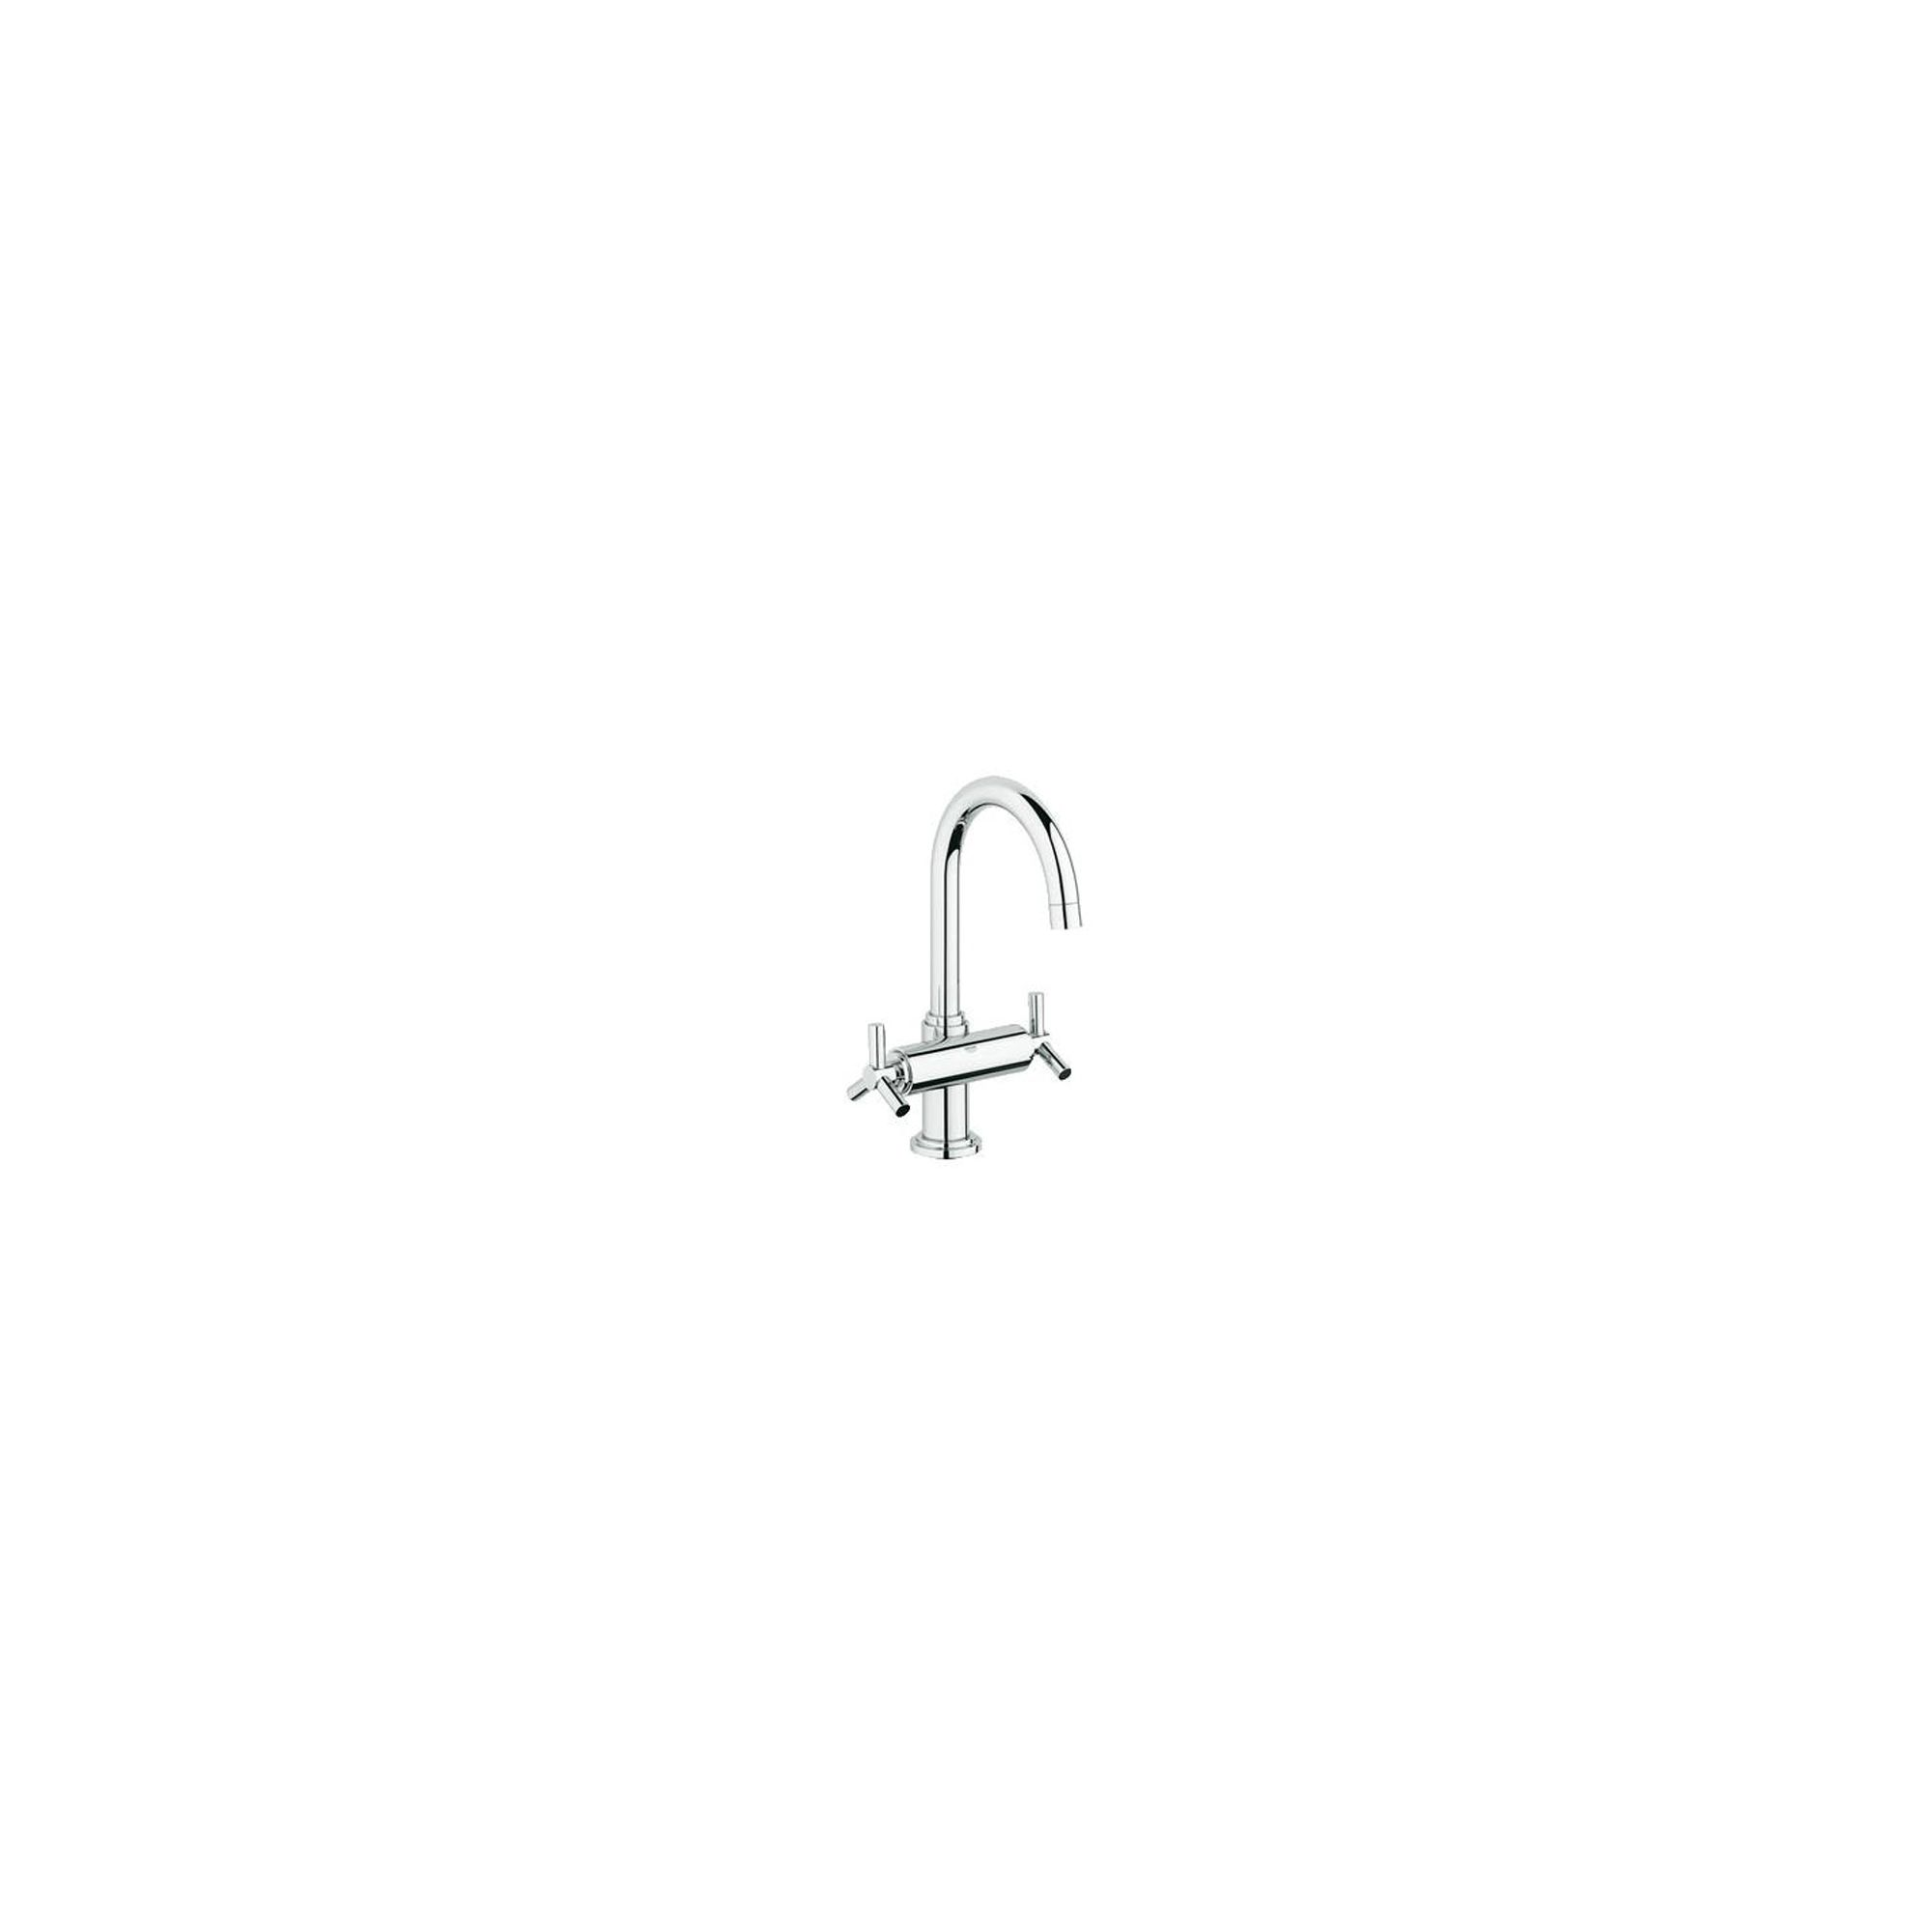 Grohe Atrio Ypsilon Mono Basin Mixer Tap, Dual Handle, Chrome at Tesco Direct